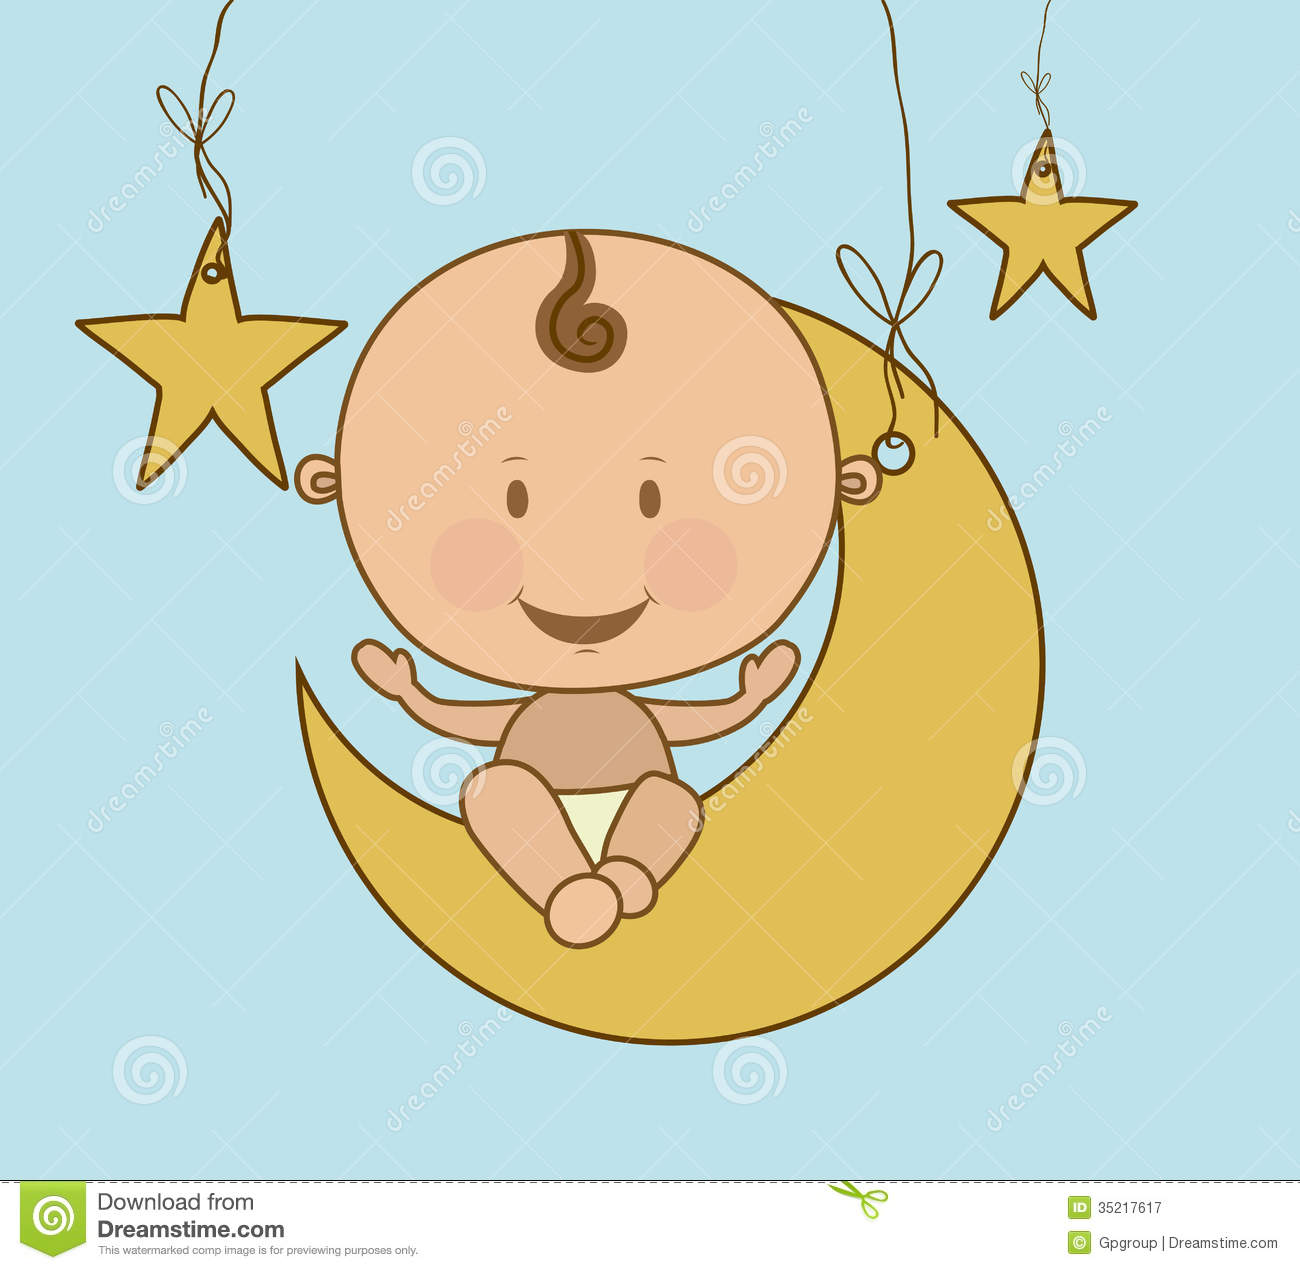 Baby Arrival Royalty Free Stock Photography - Image: 35217617